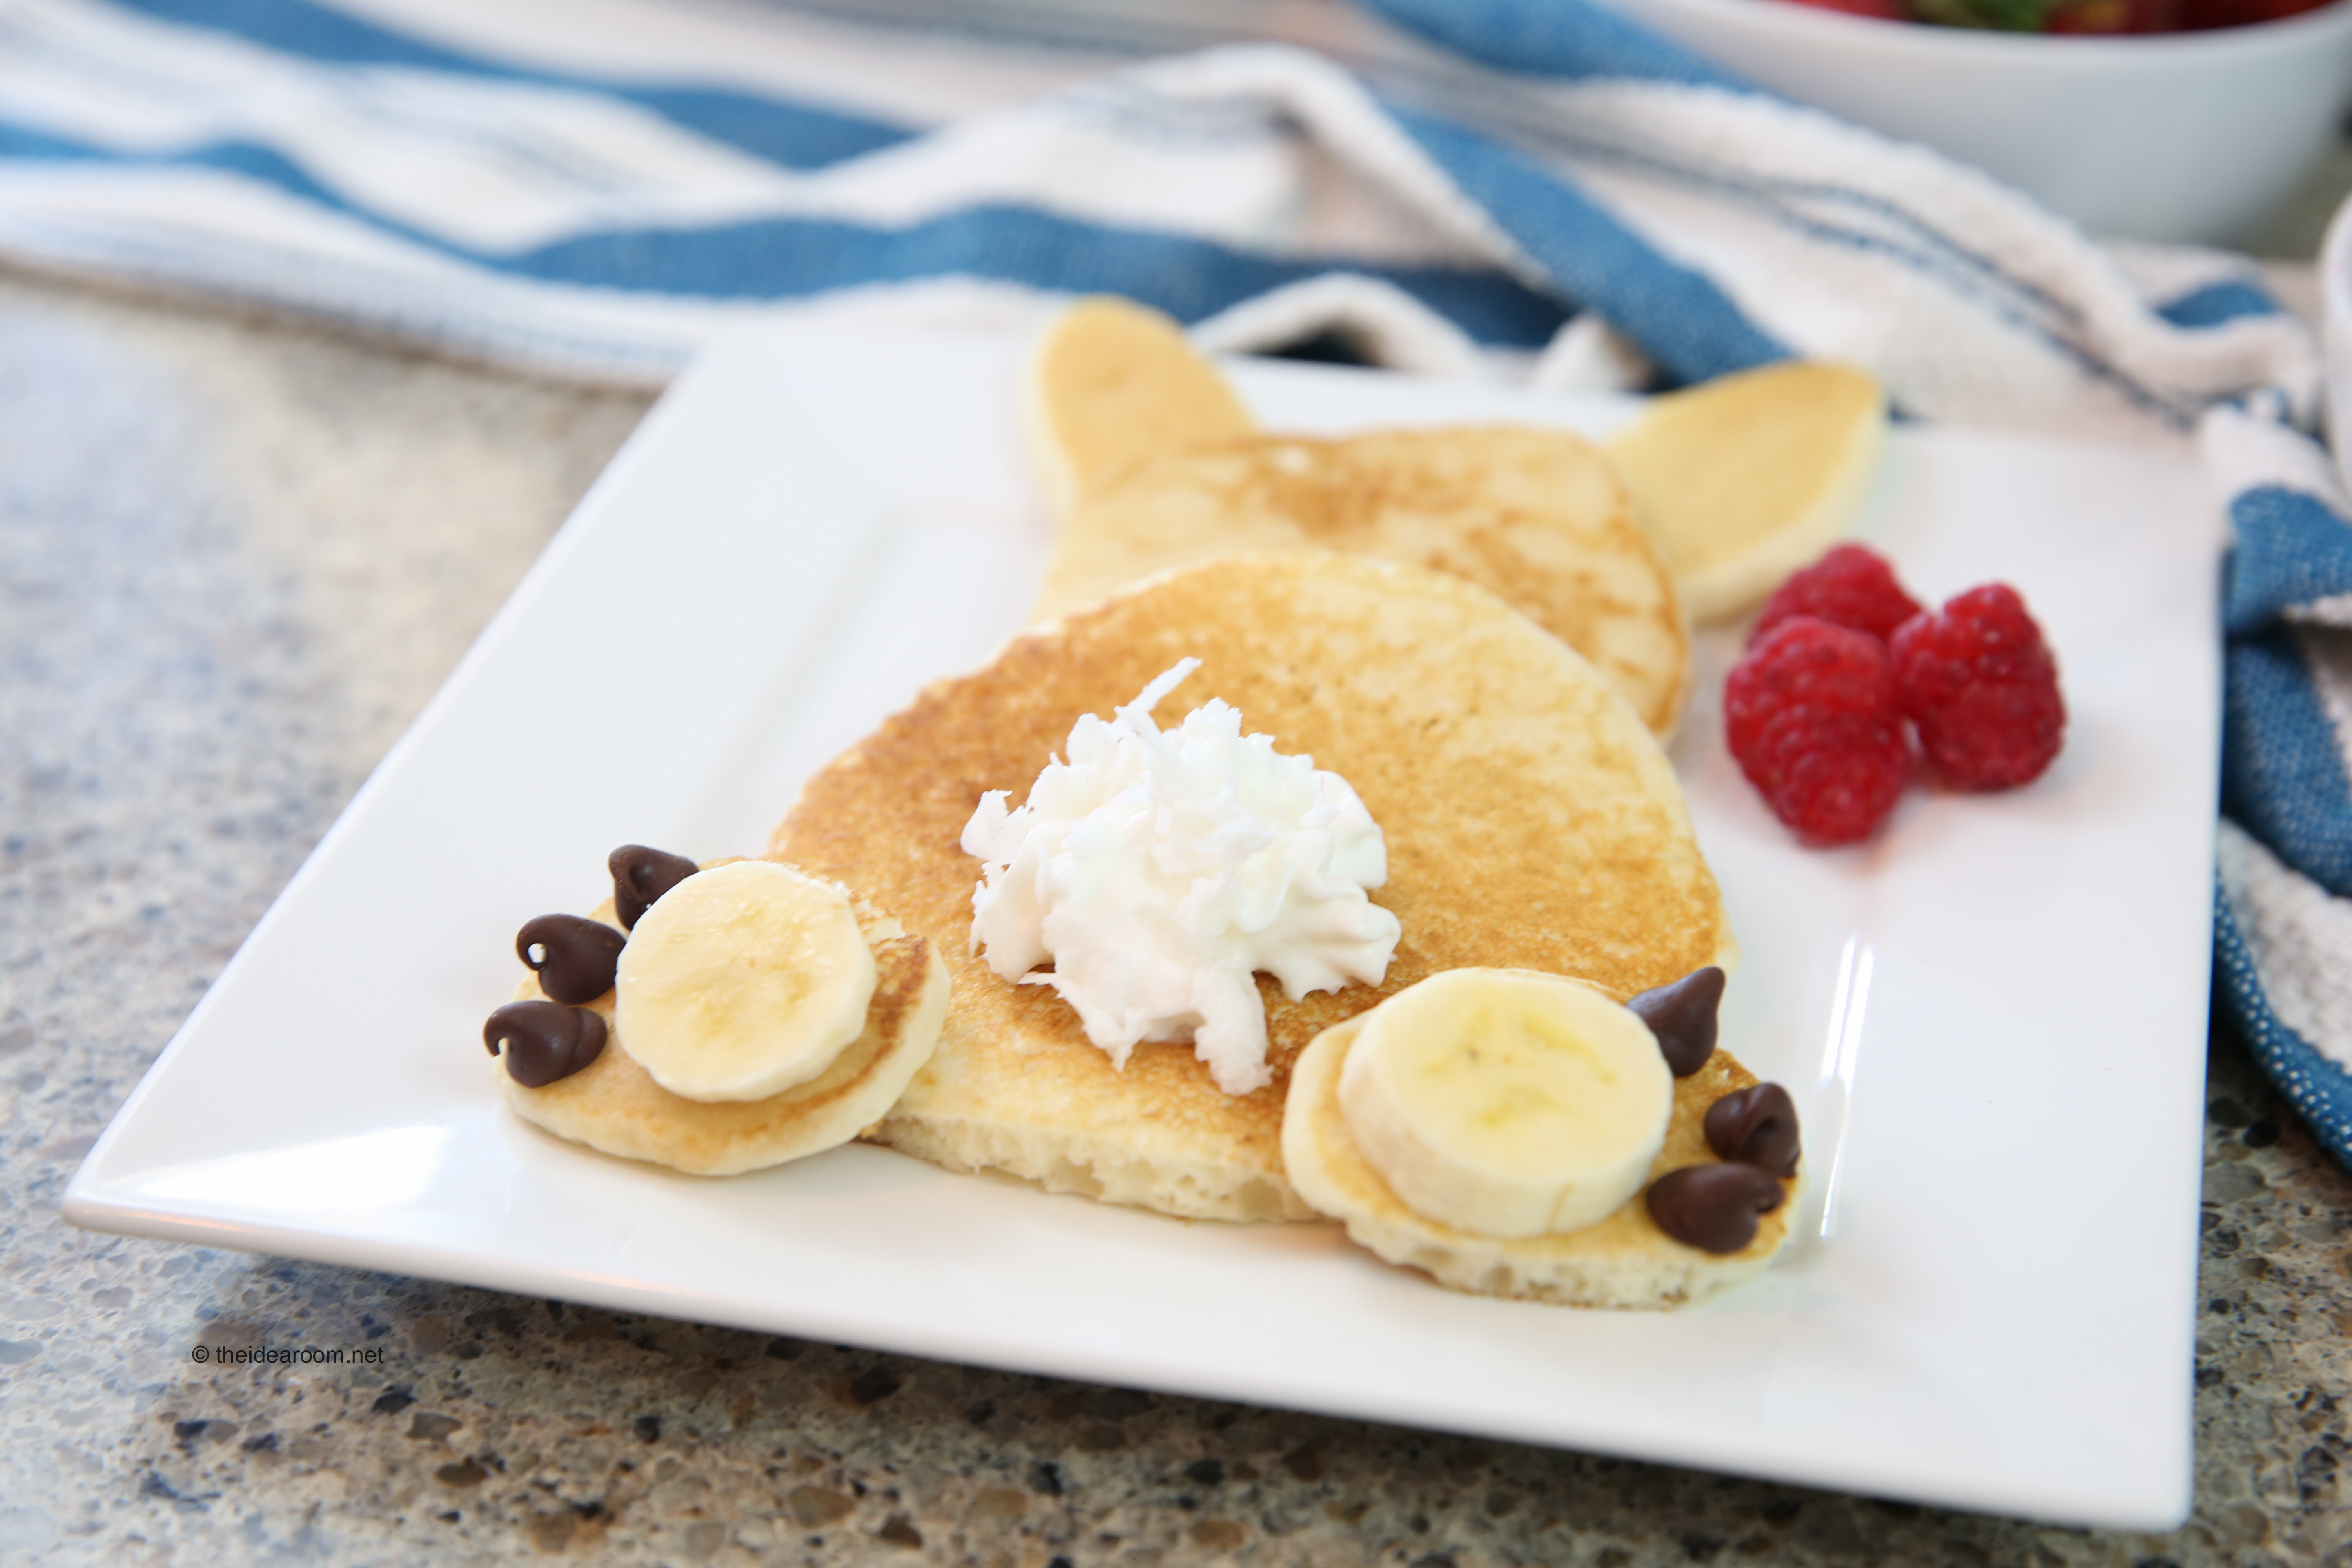 Bunny Pancakes I Love Doing Something A Little Extra Special With The Kids On Holidays And Think We Will Make These For Saturday Morning Before Easter